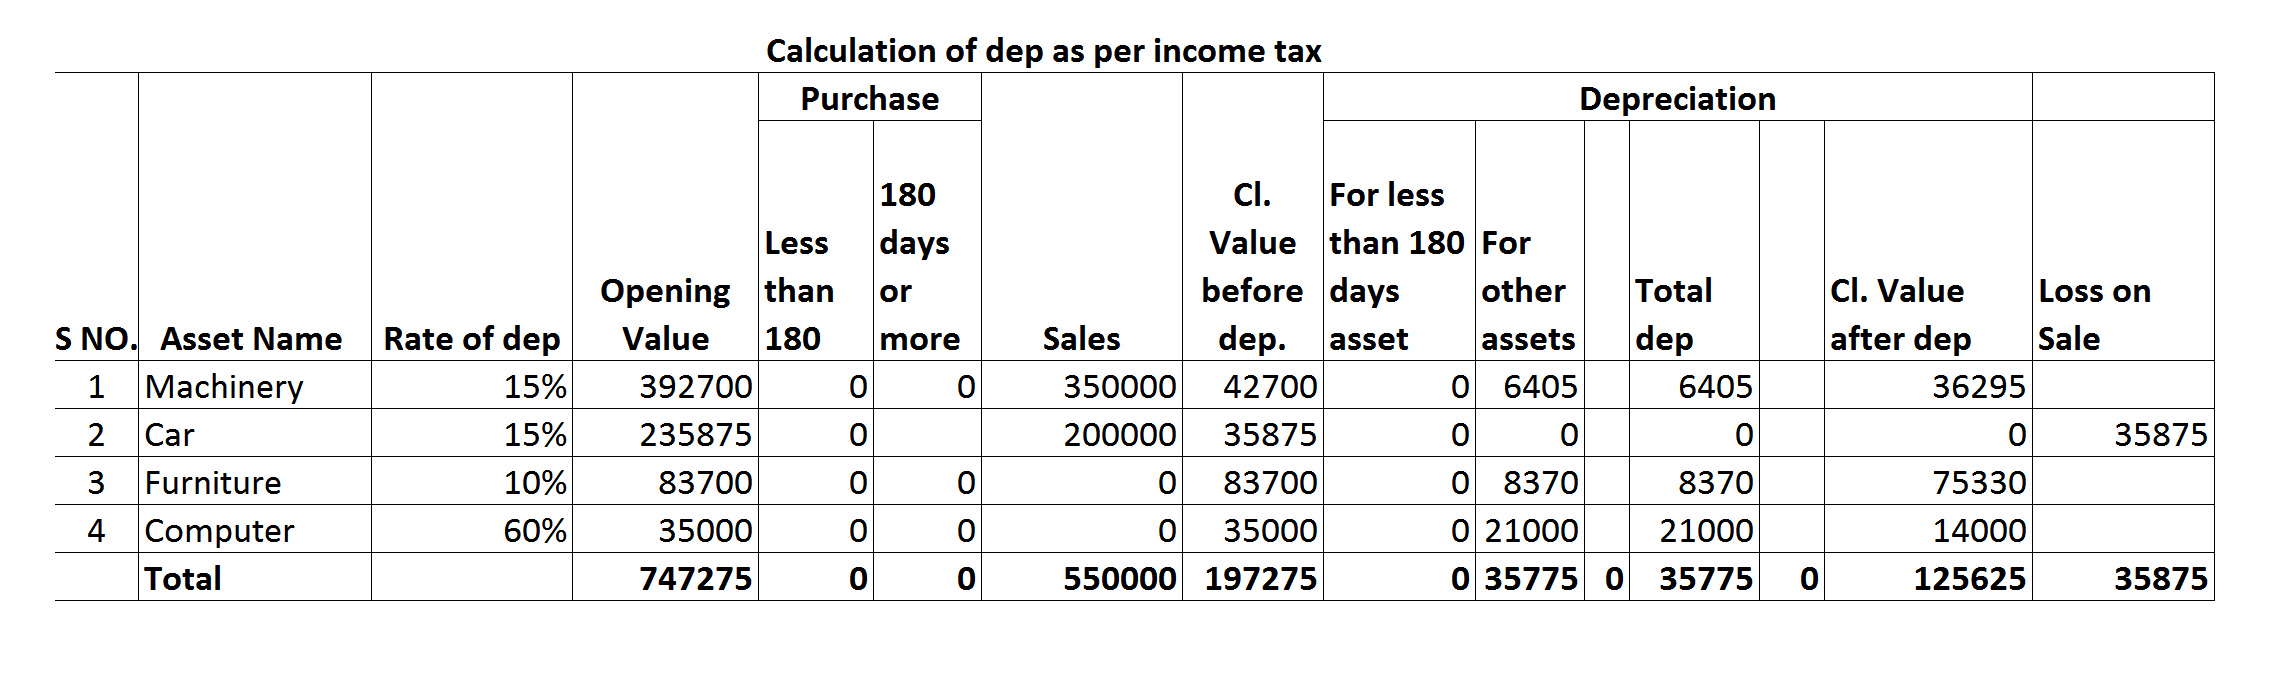 Calculation of dep as per income tax Q3.png